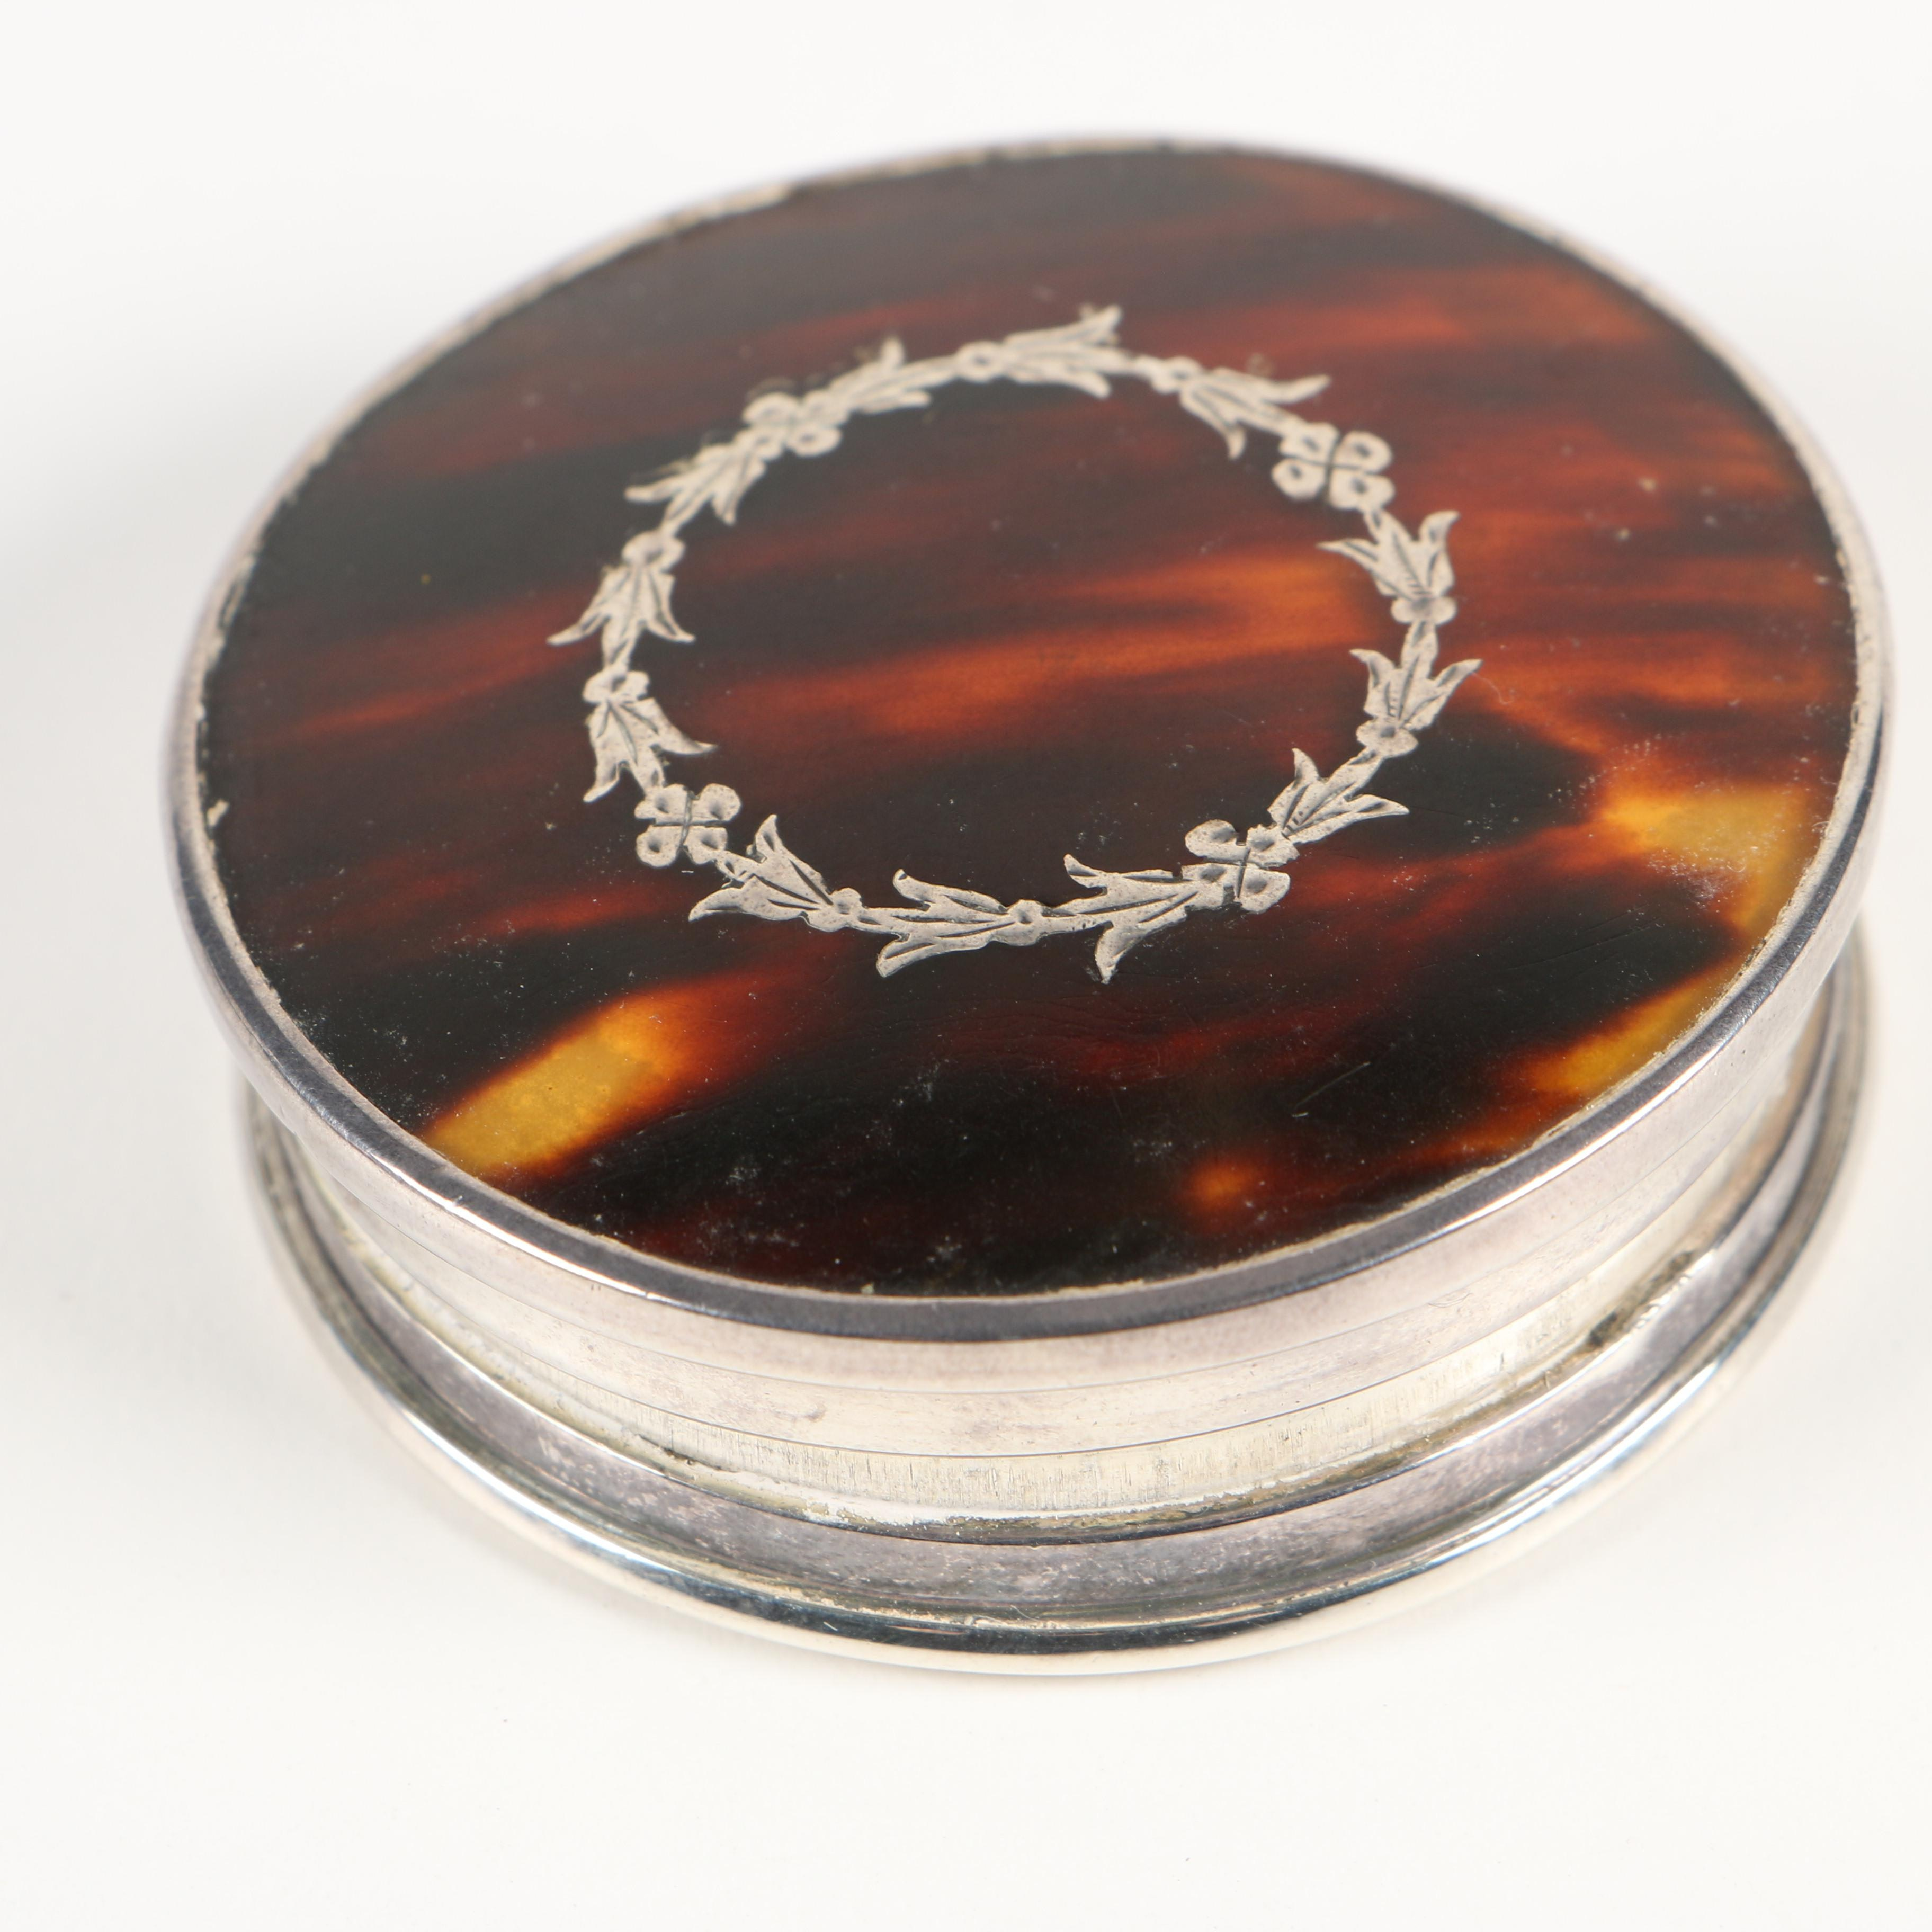 English Import Sterling Mounted Tortoiseshell Compact, Early 20th Century